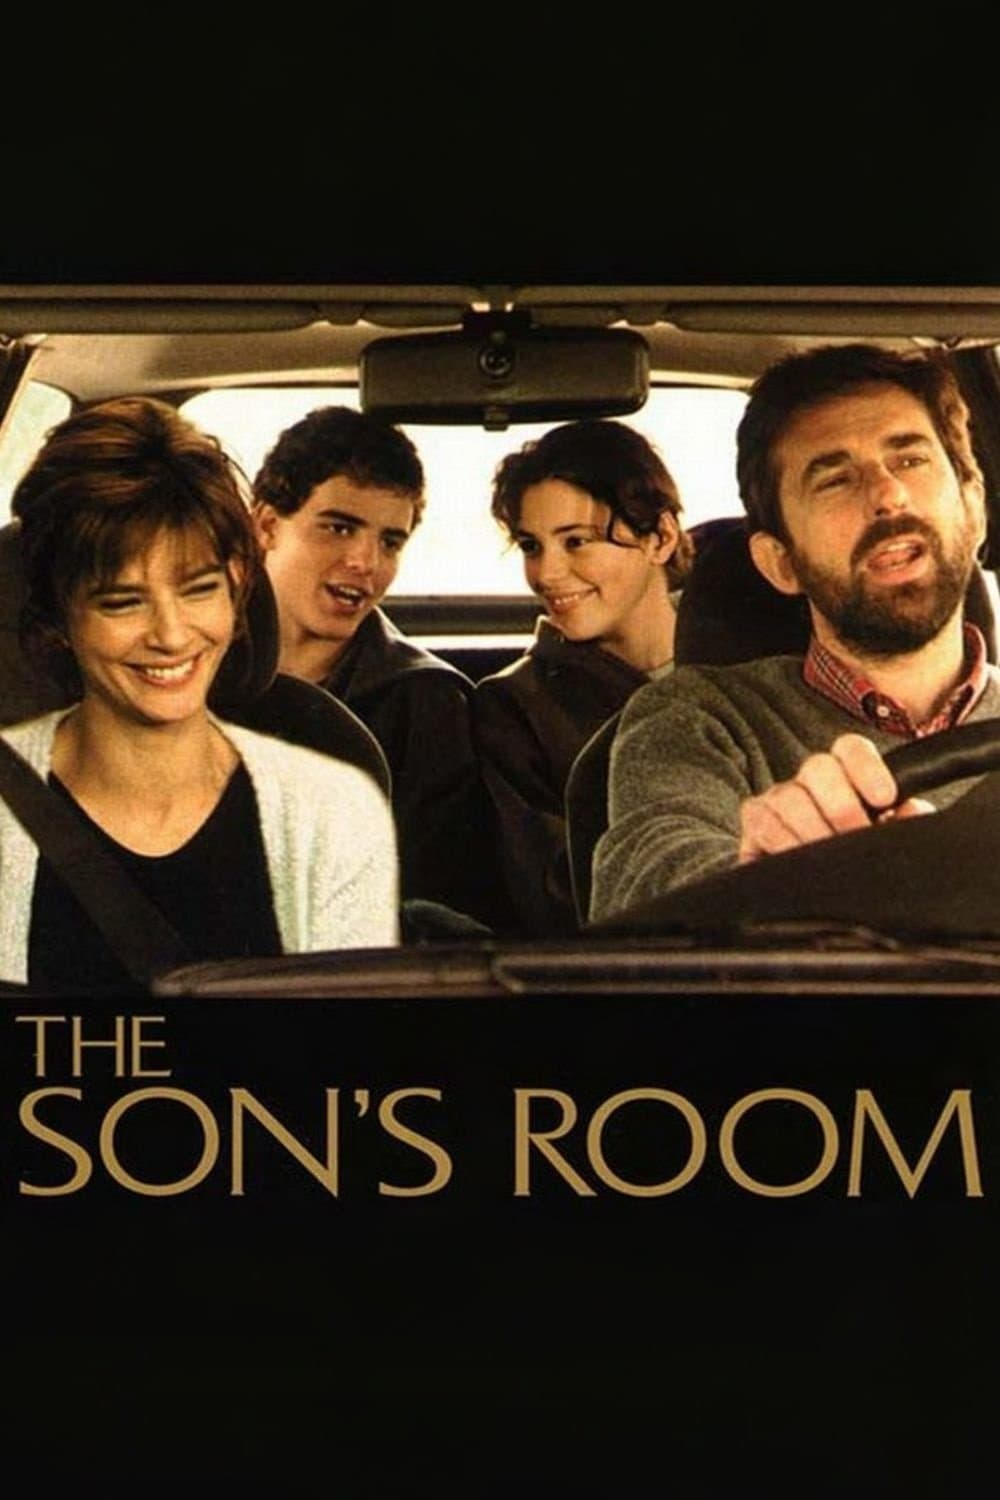 The Son's Room